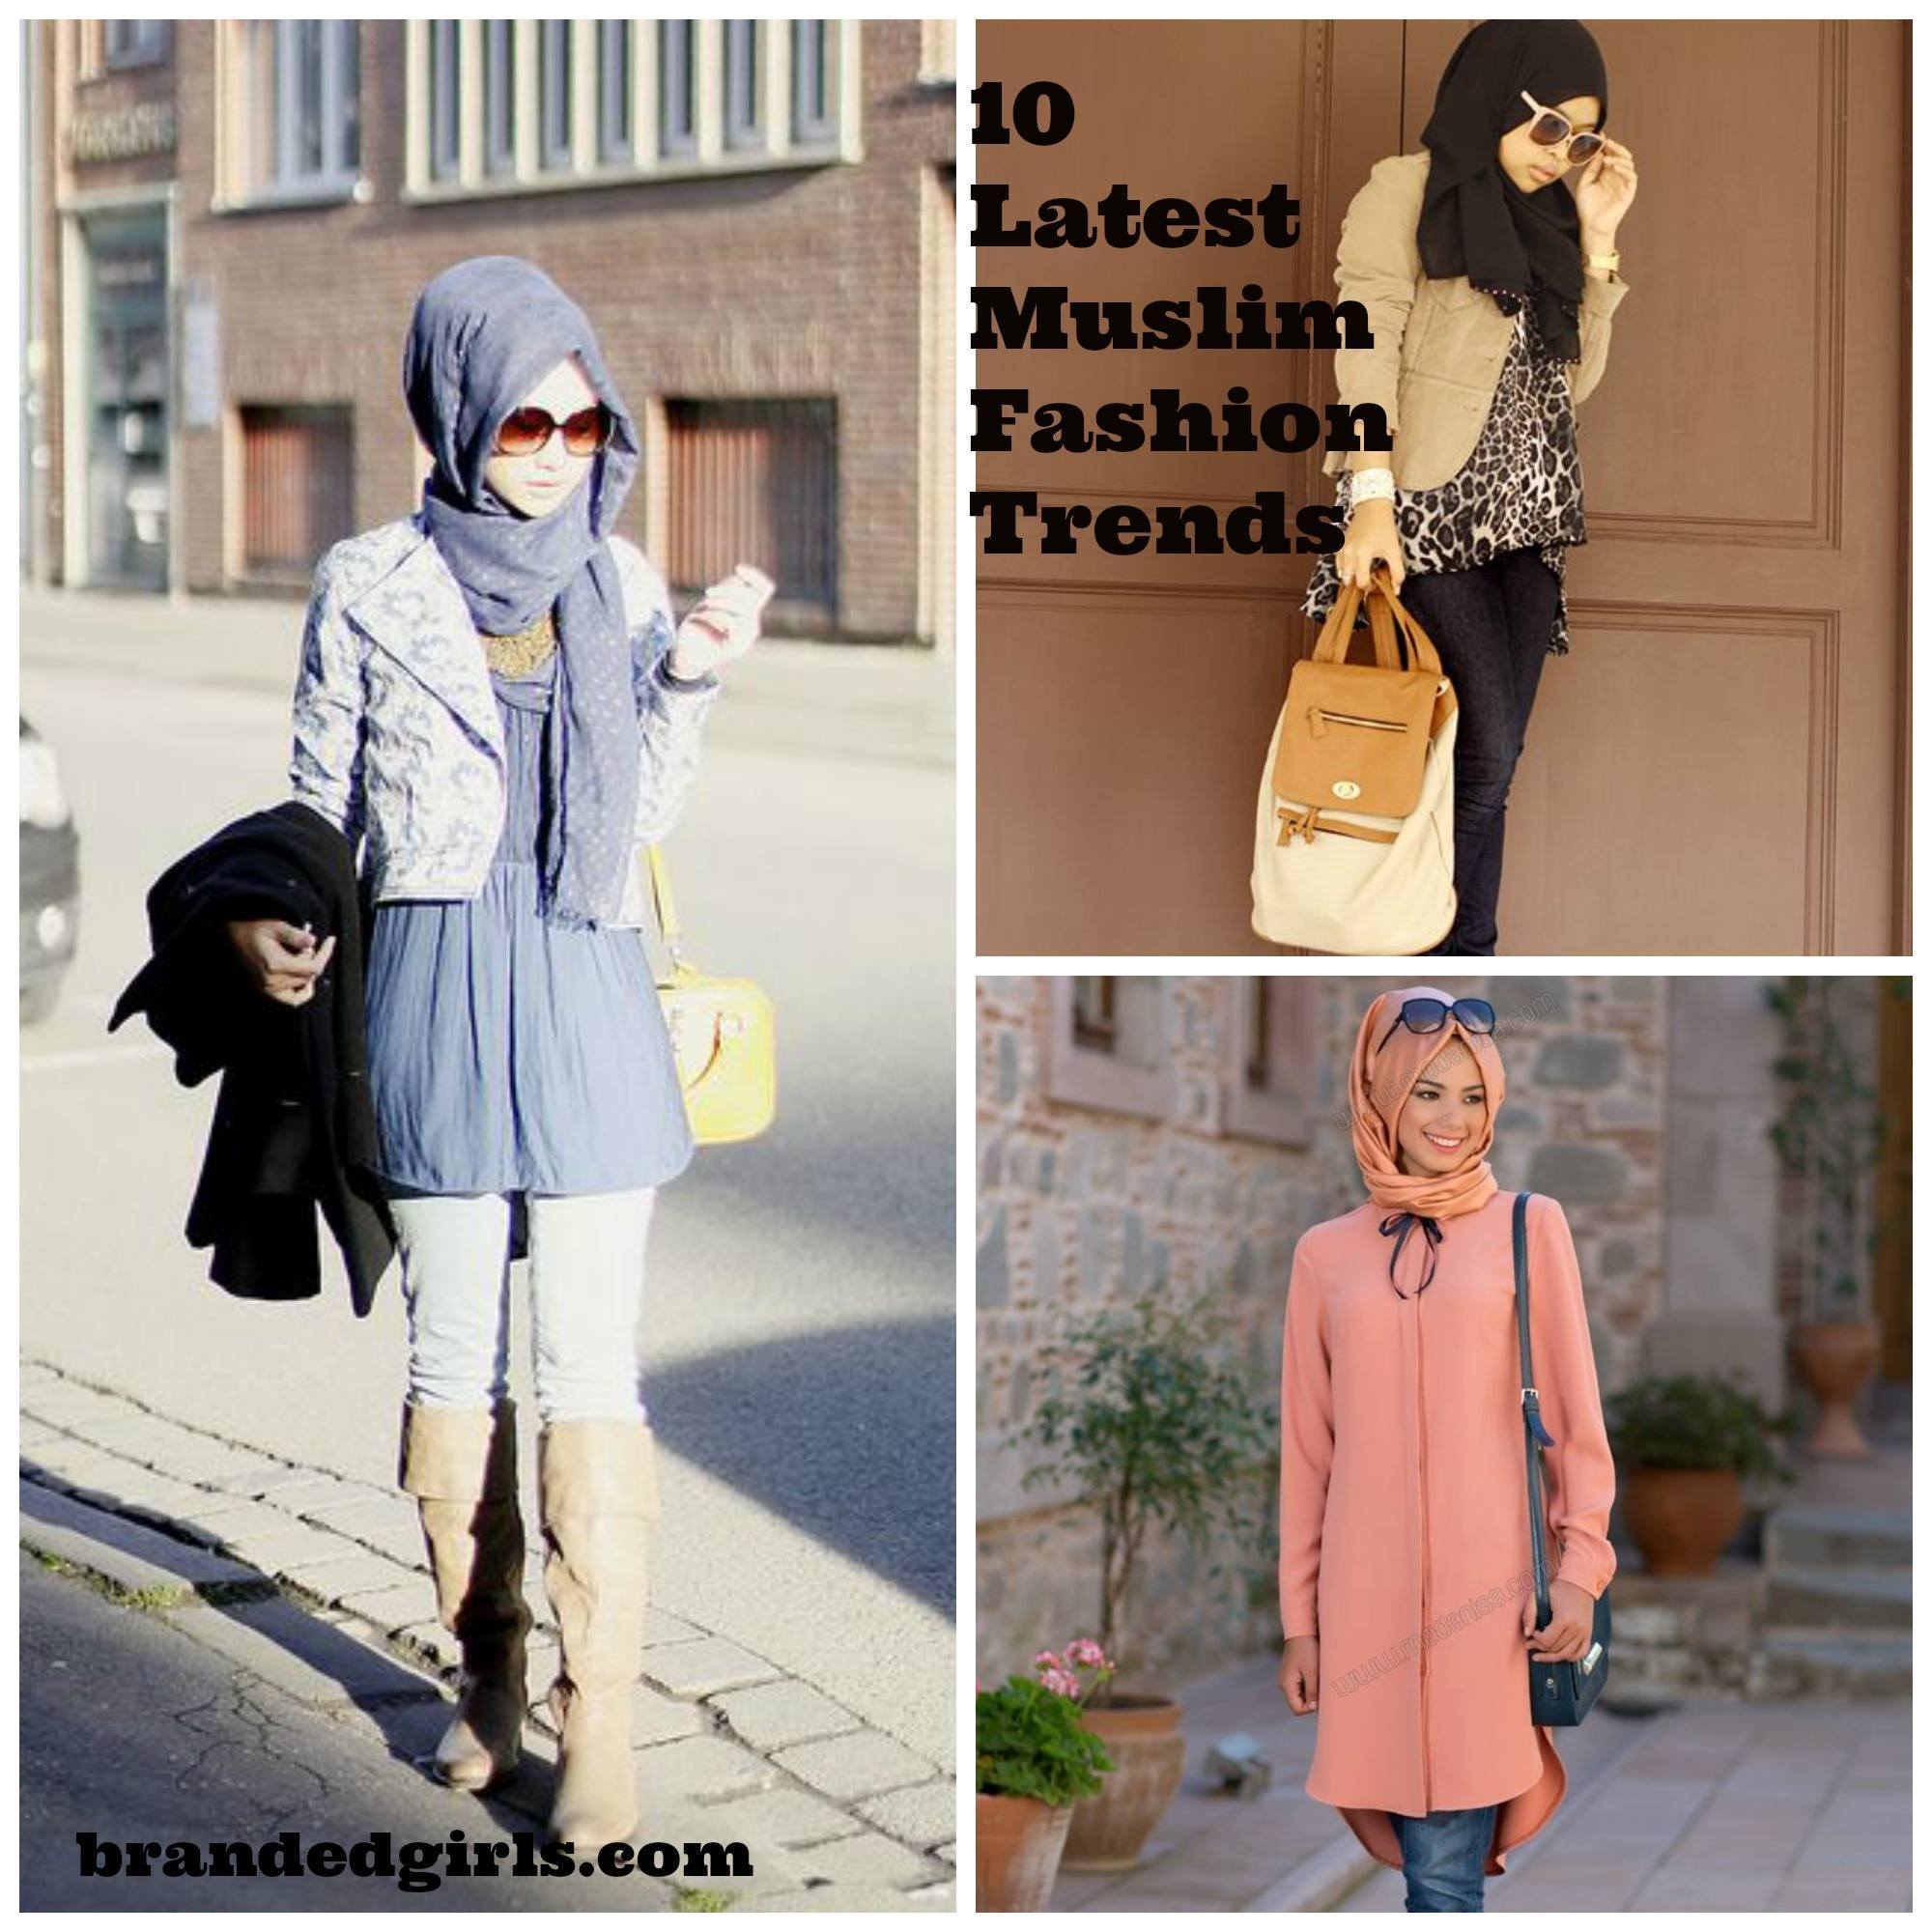 muslim fashion trends